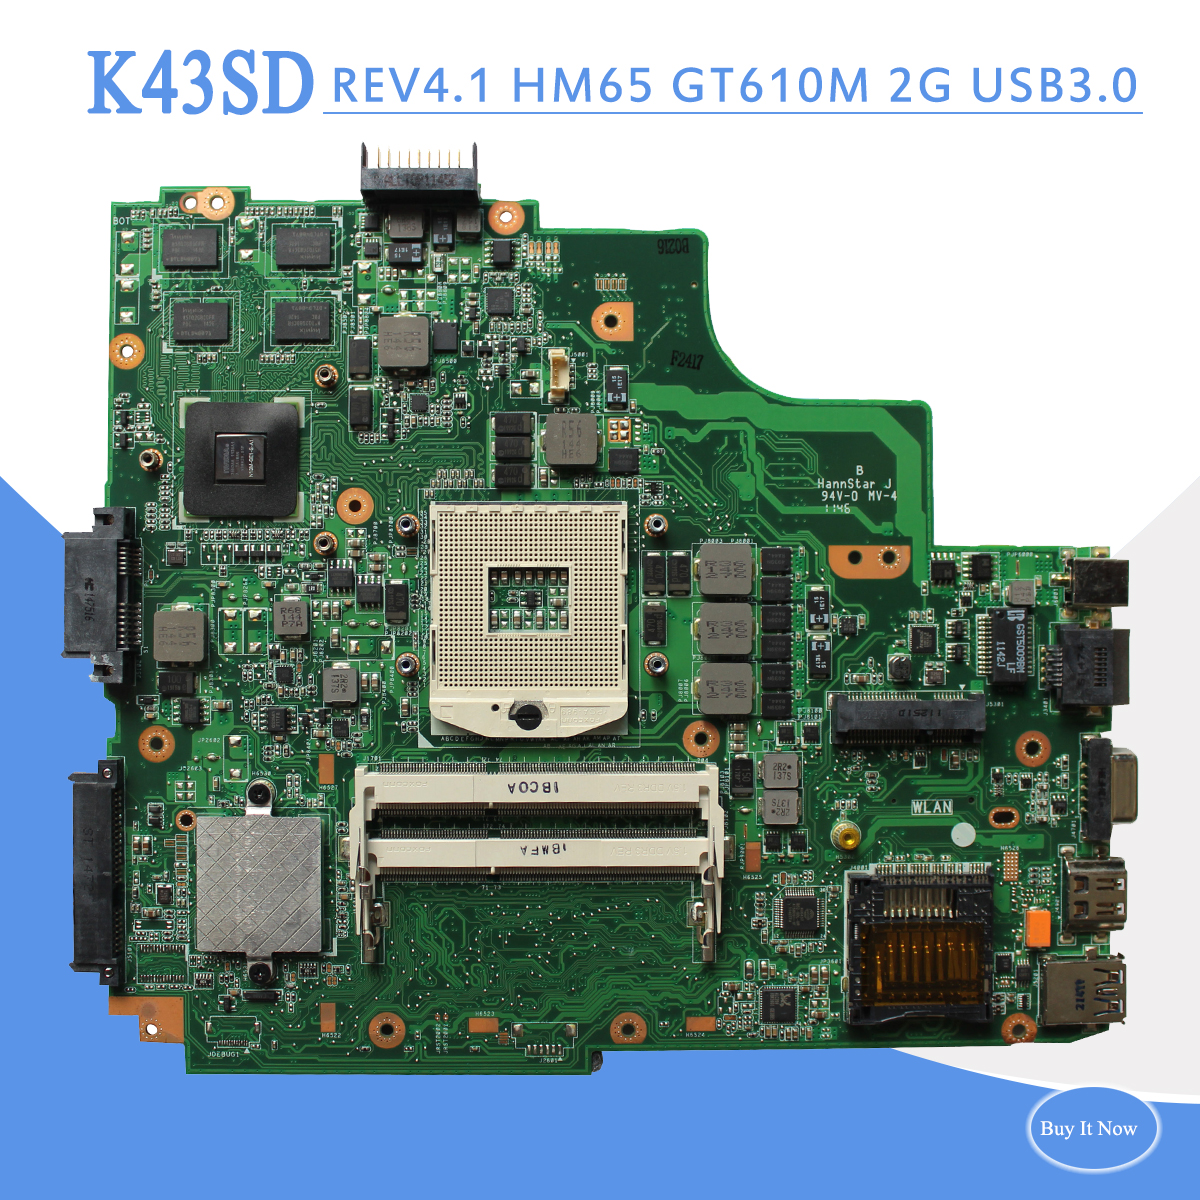 K43SD REV4.1 mainboard For Asus K43SD A43S K43S Laptop motherboard GT610M 2G REV:4.1 DDR3 USB3.0 mainboard fully tested